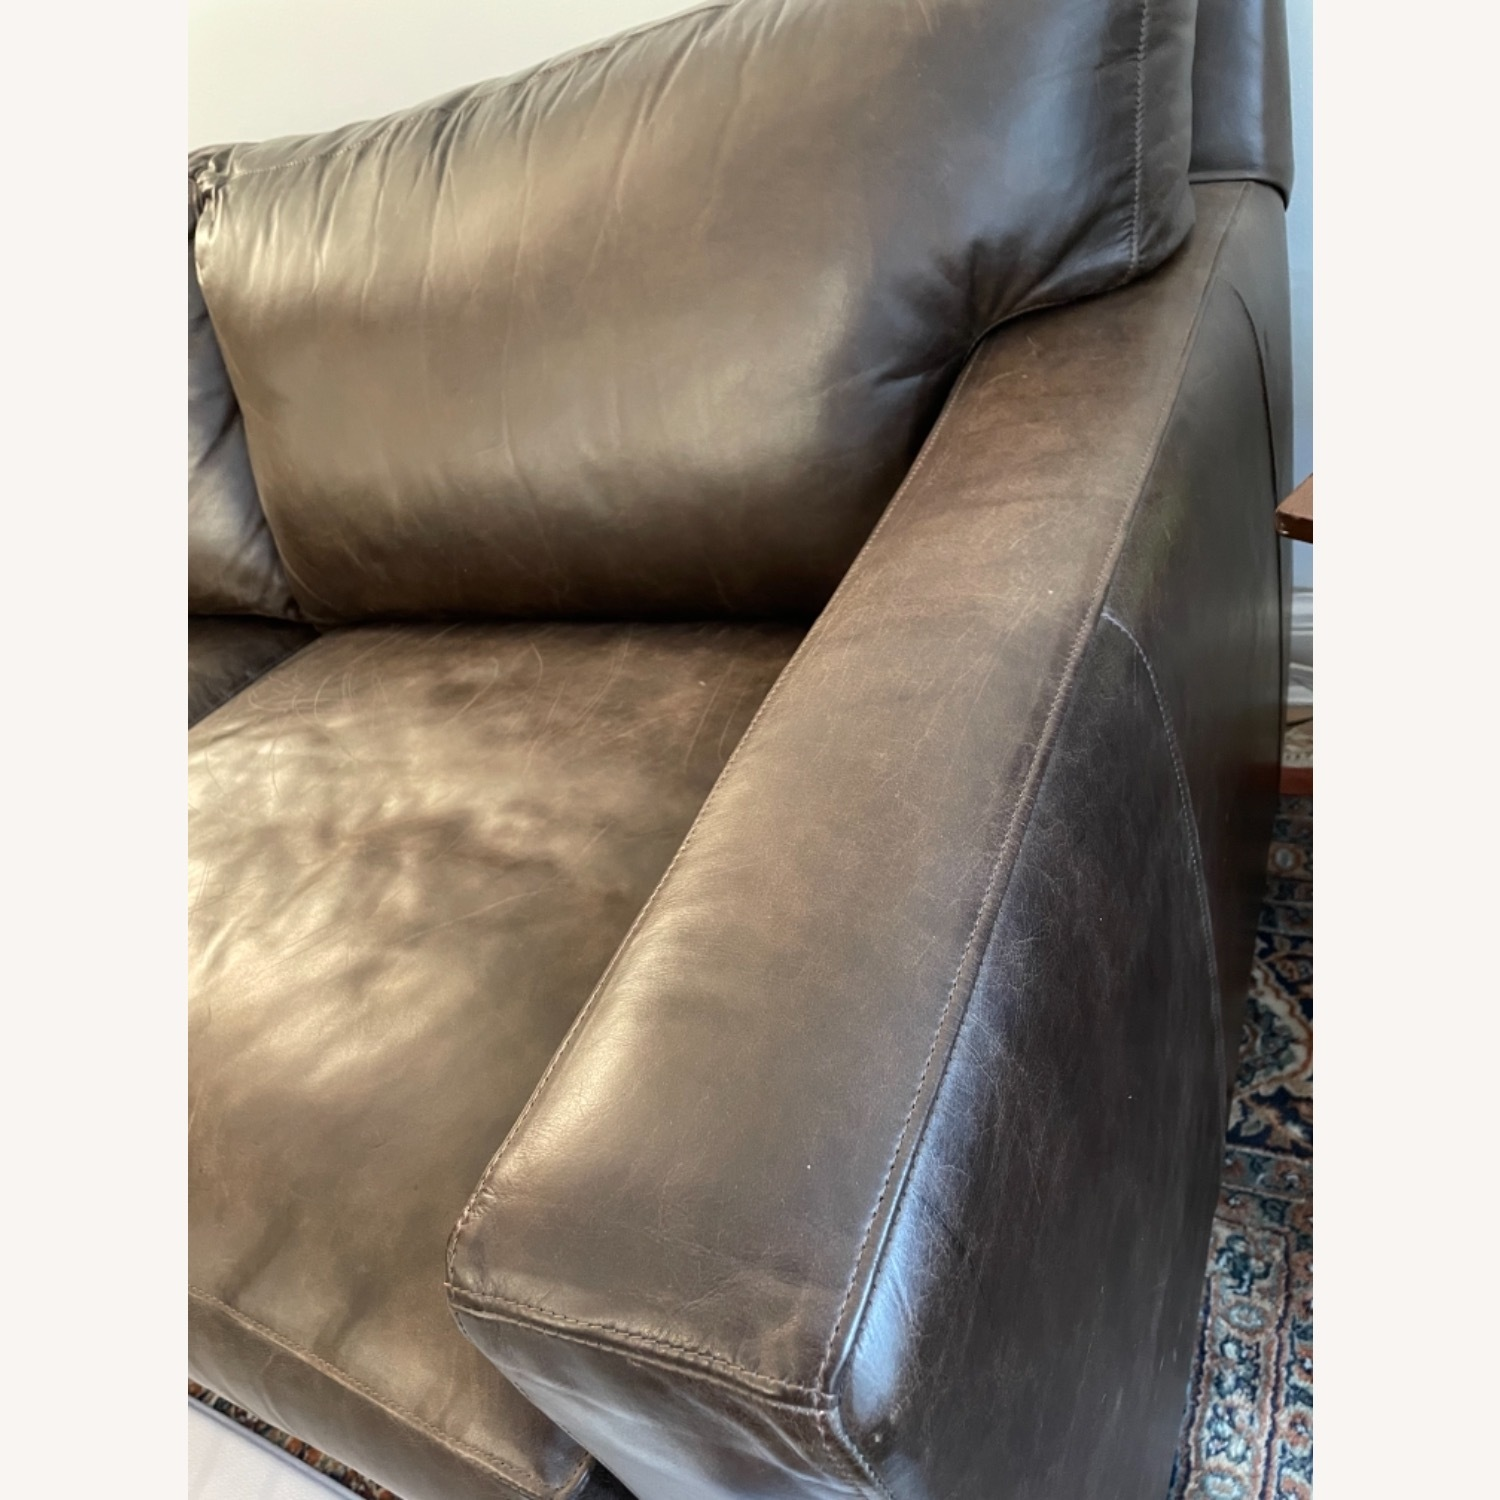 Crate and Barrel Axis Leather 2-Seat Sofa - image-3